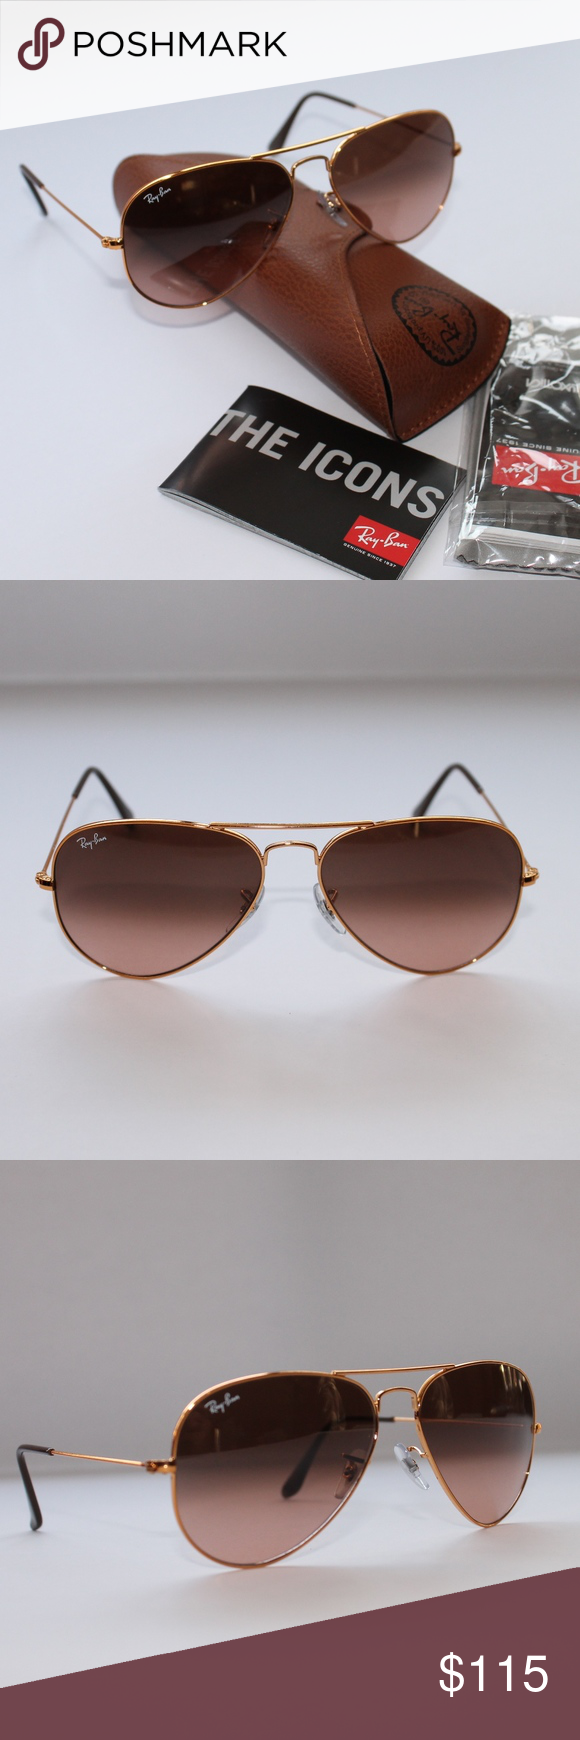 d09c21043a Ray-Ban AVIATOR GRADIENT Bronze-Copper Pink Brown Brand New 100%Authentic  Ray-Ban AVIATOR RB3025 9001A5 58-14 Bronze-Copper Pink Brown Gradient Ray- Ban ...